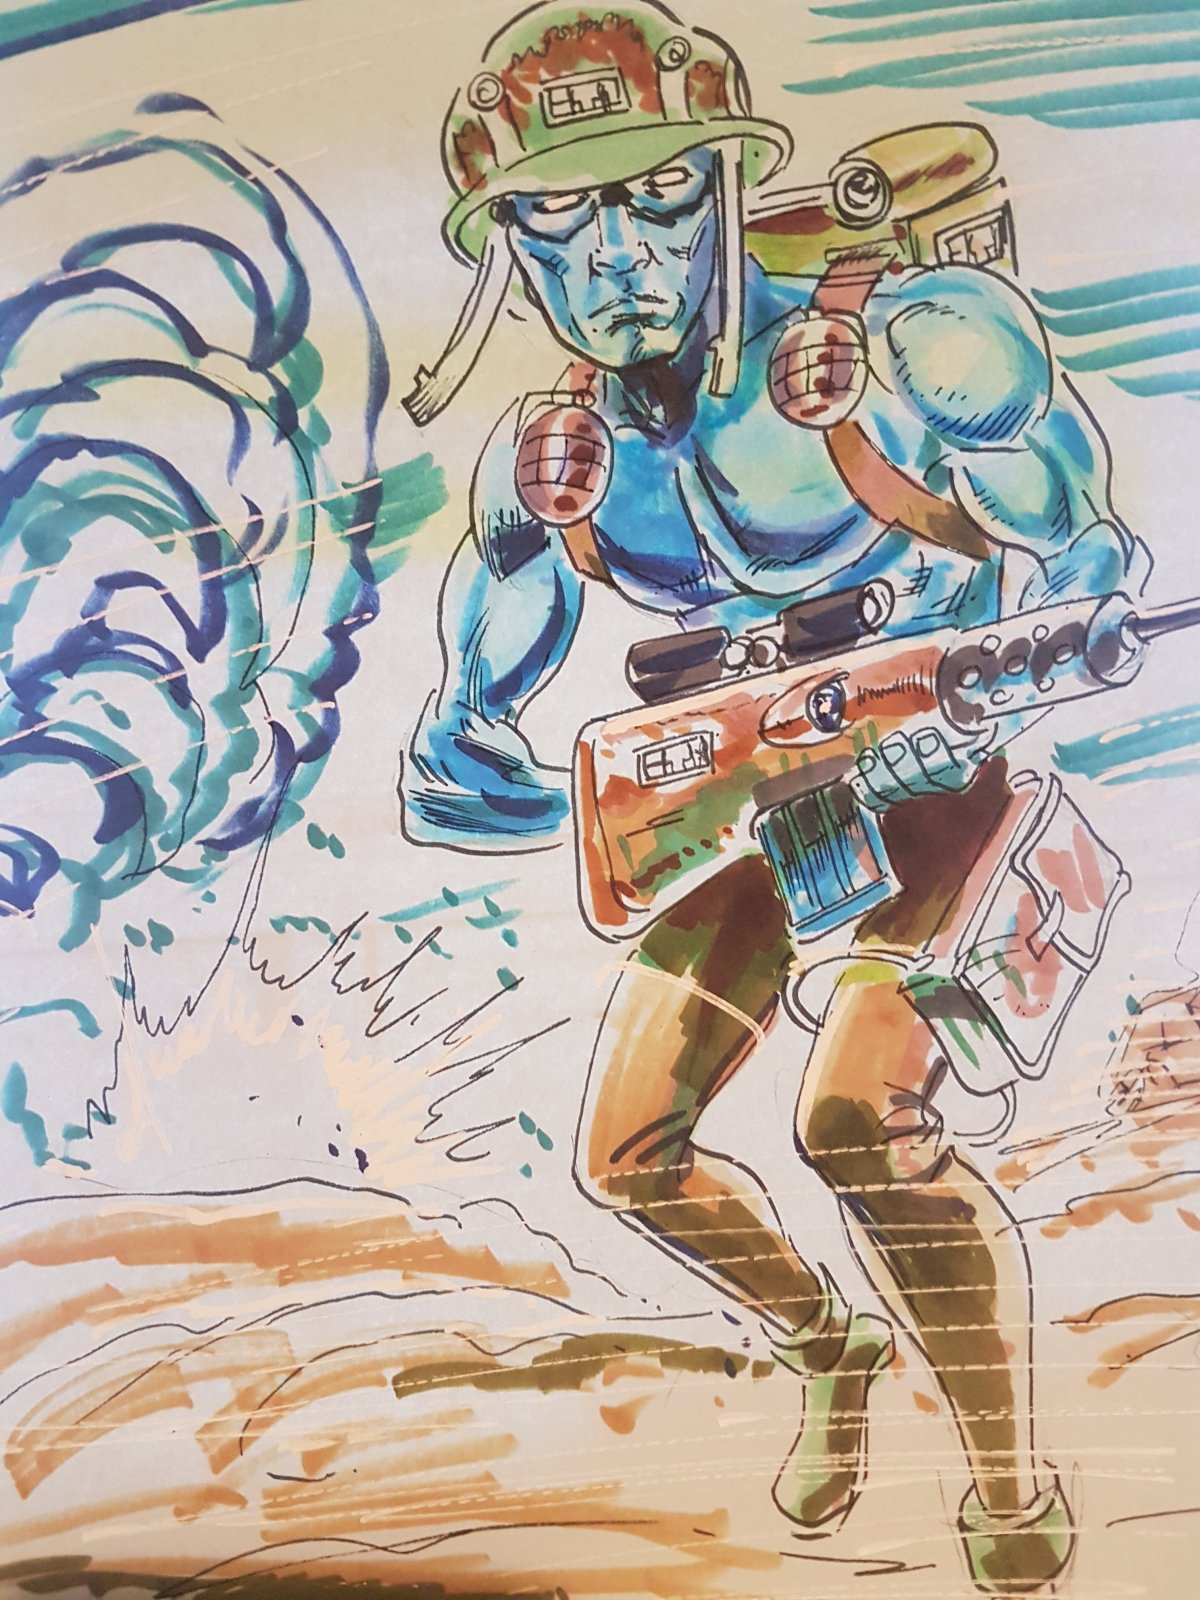 2000AD ART – Rogue Trooper by MikeCollins